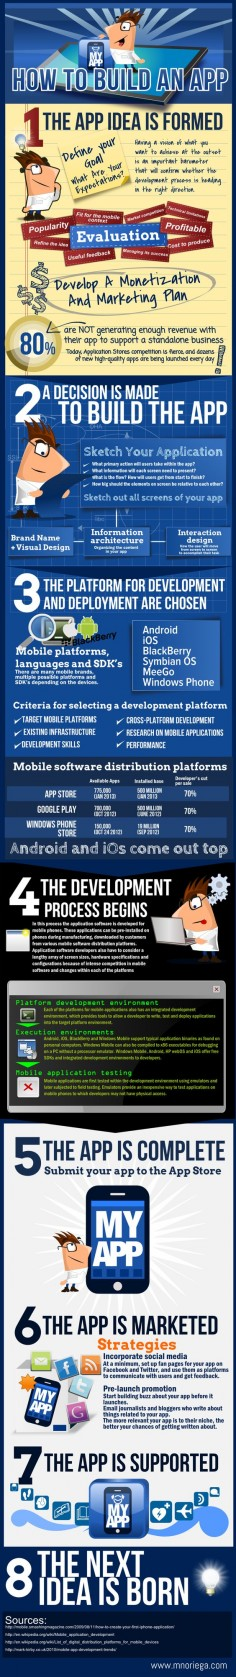 This infographic shows in a wide perspective how to develop an app, from the idea till development and marketing.